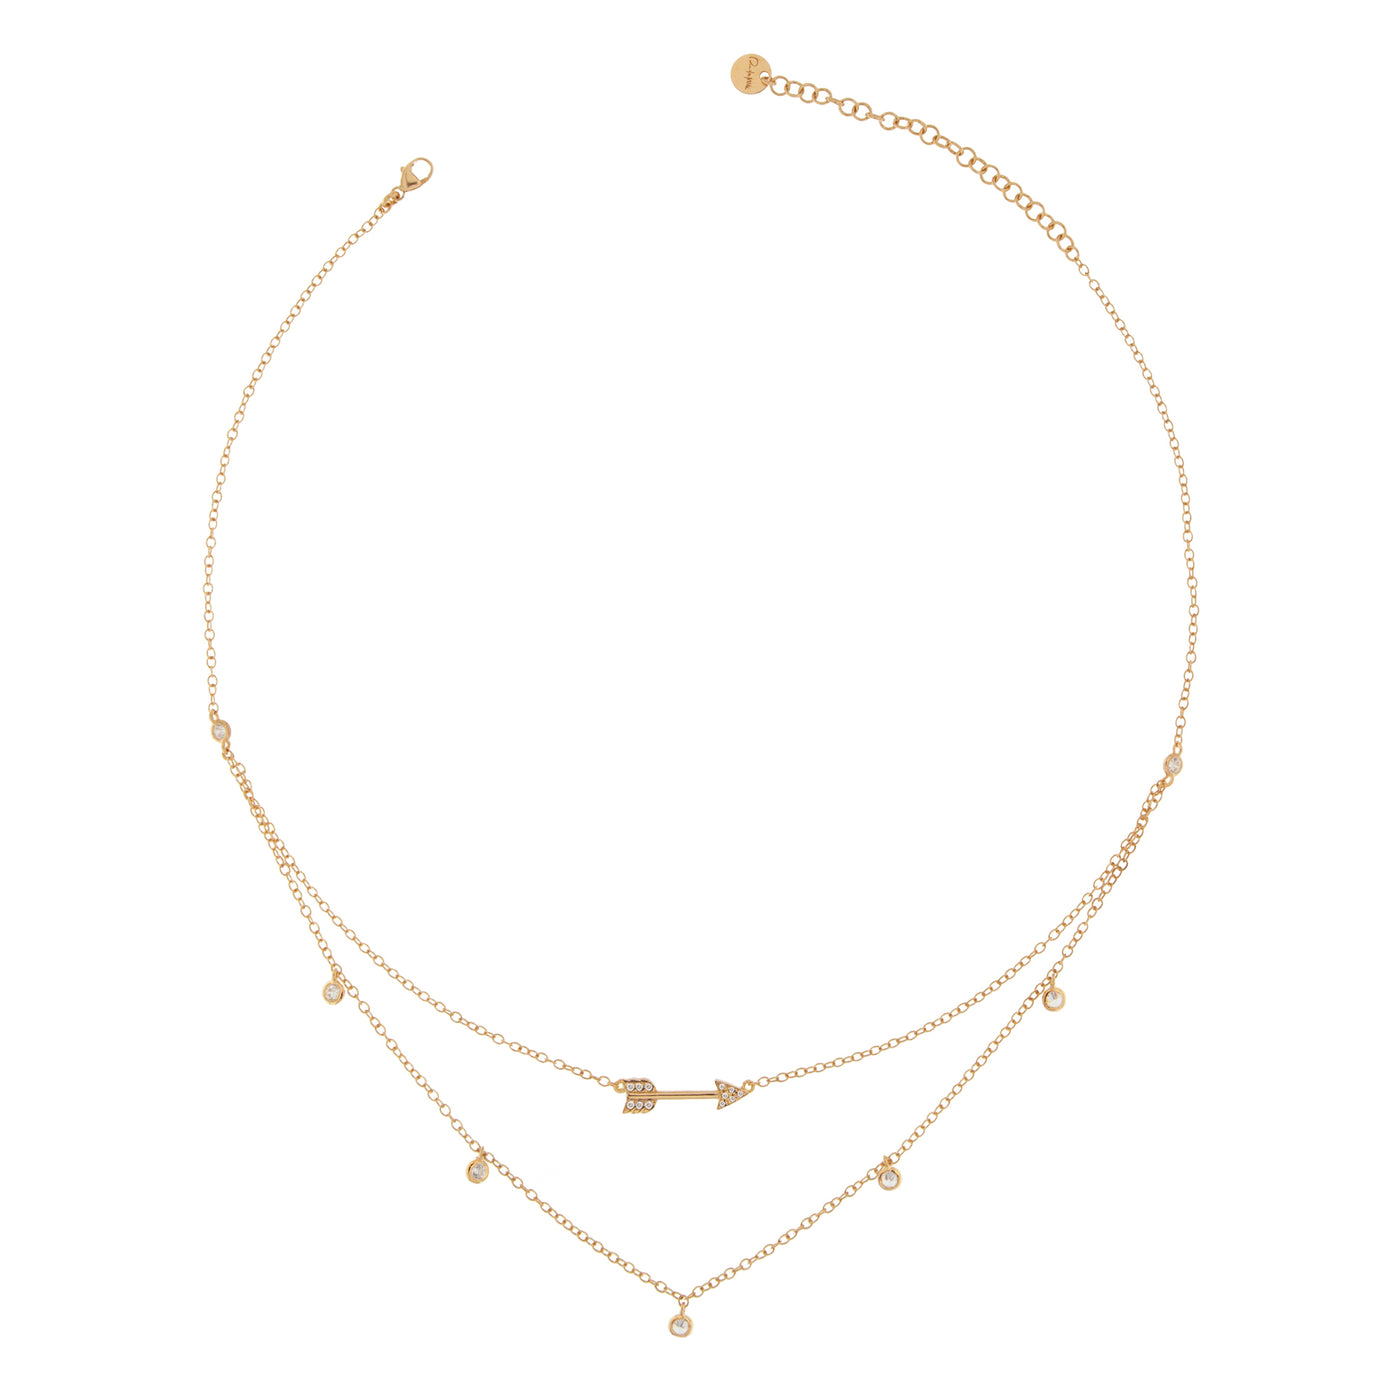 Chokers - Necklace Double Chain Arrow With Zirconia - 1 | Rue des Mille